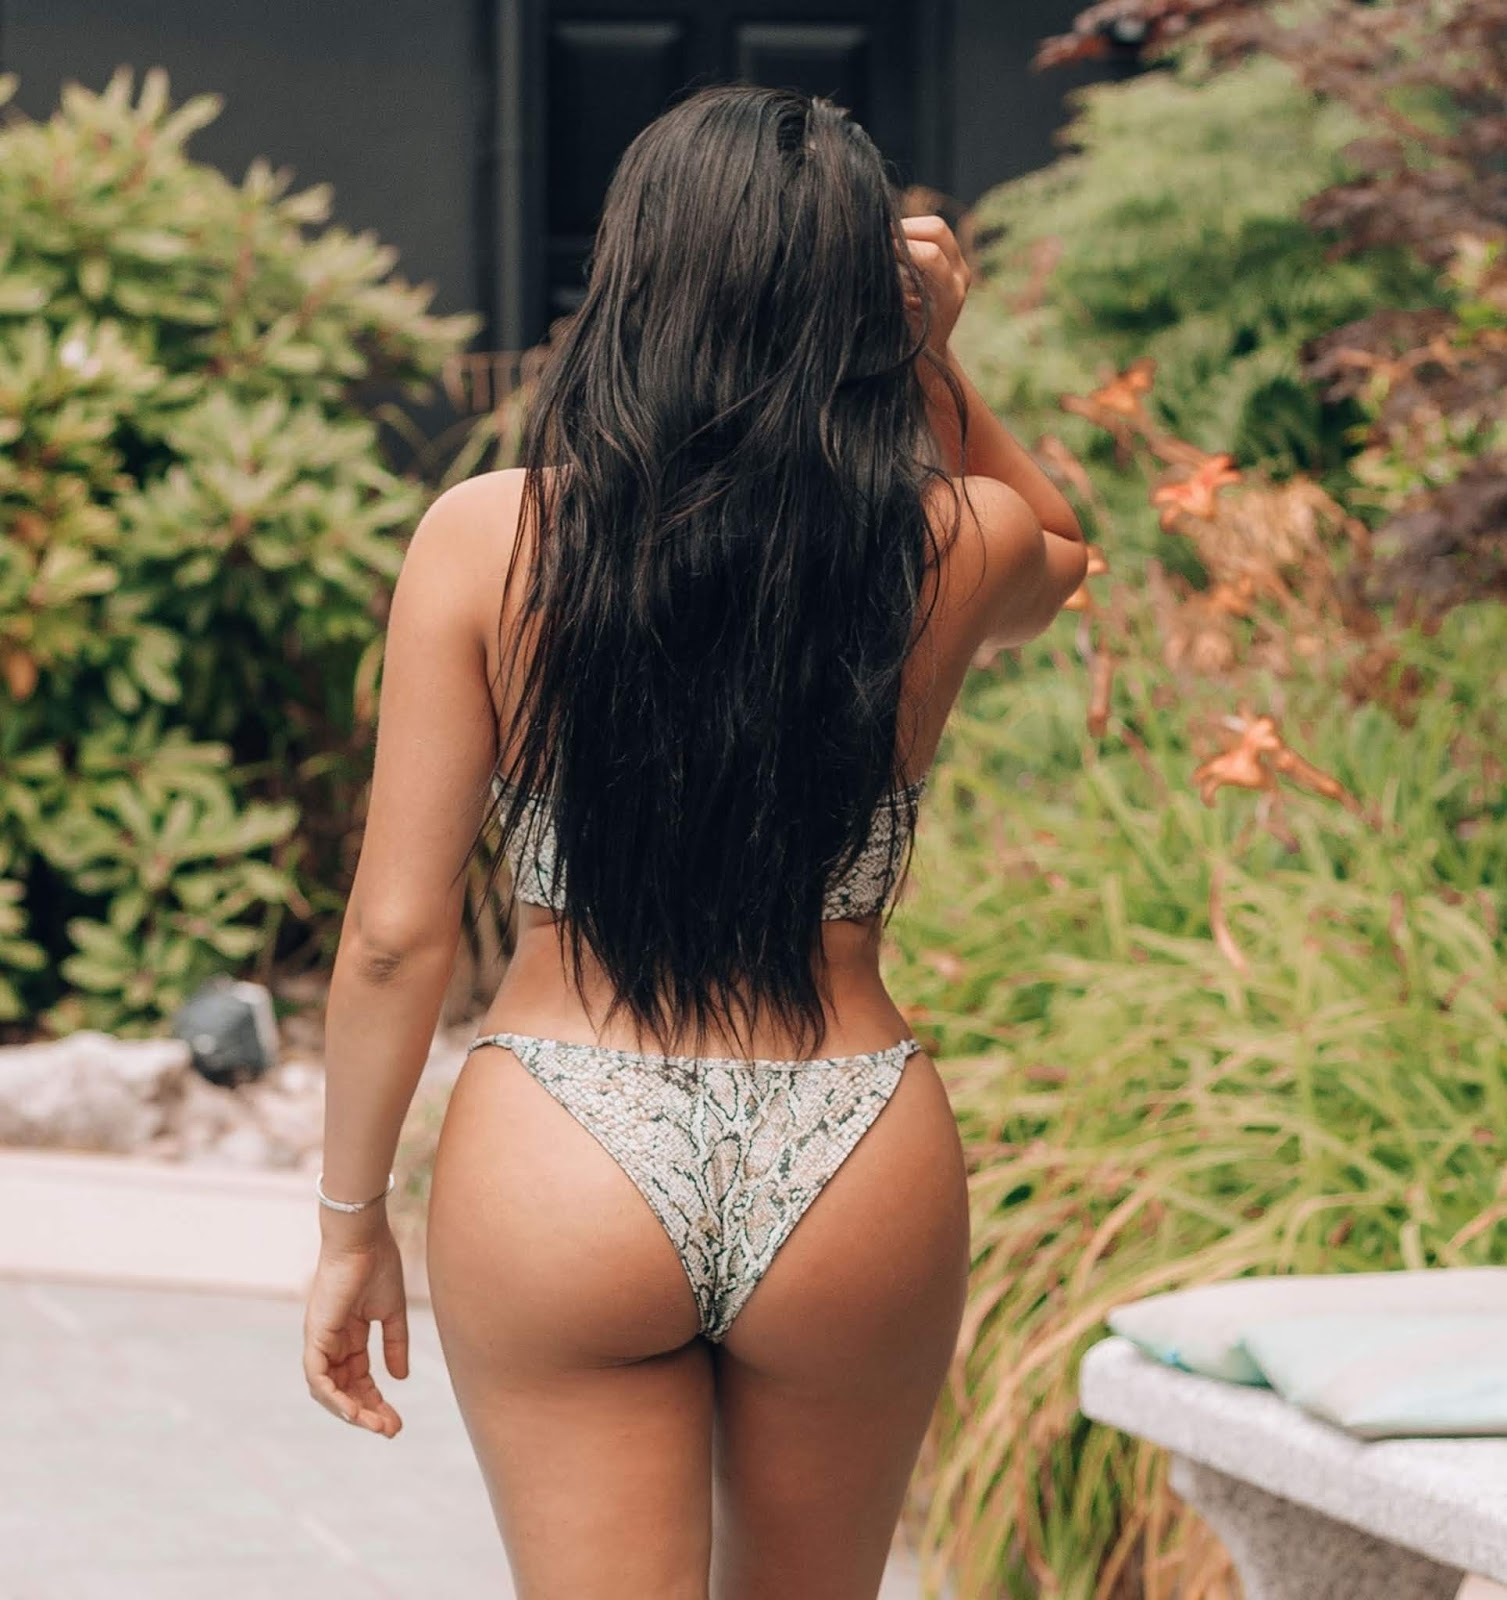 Marnie-Simpson-was-spotted-in-a-snakeskin-bikini-in-Naples.-q6qm2vgy47.jpg